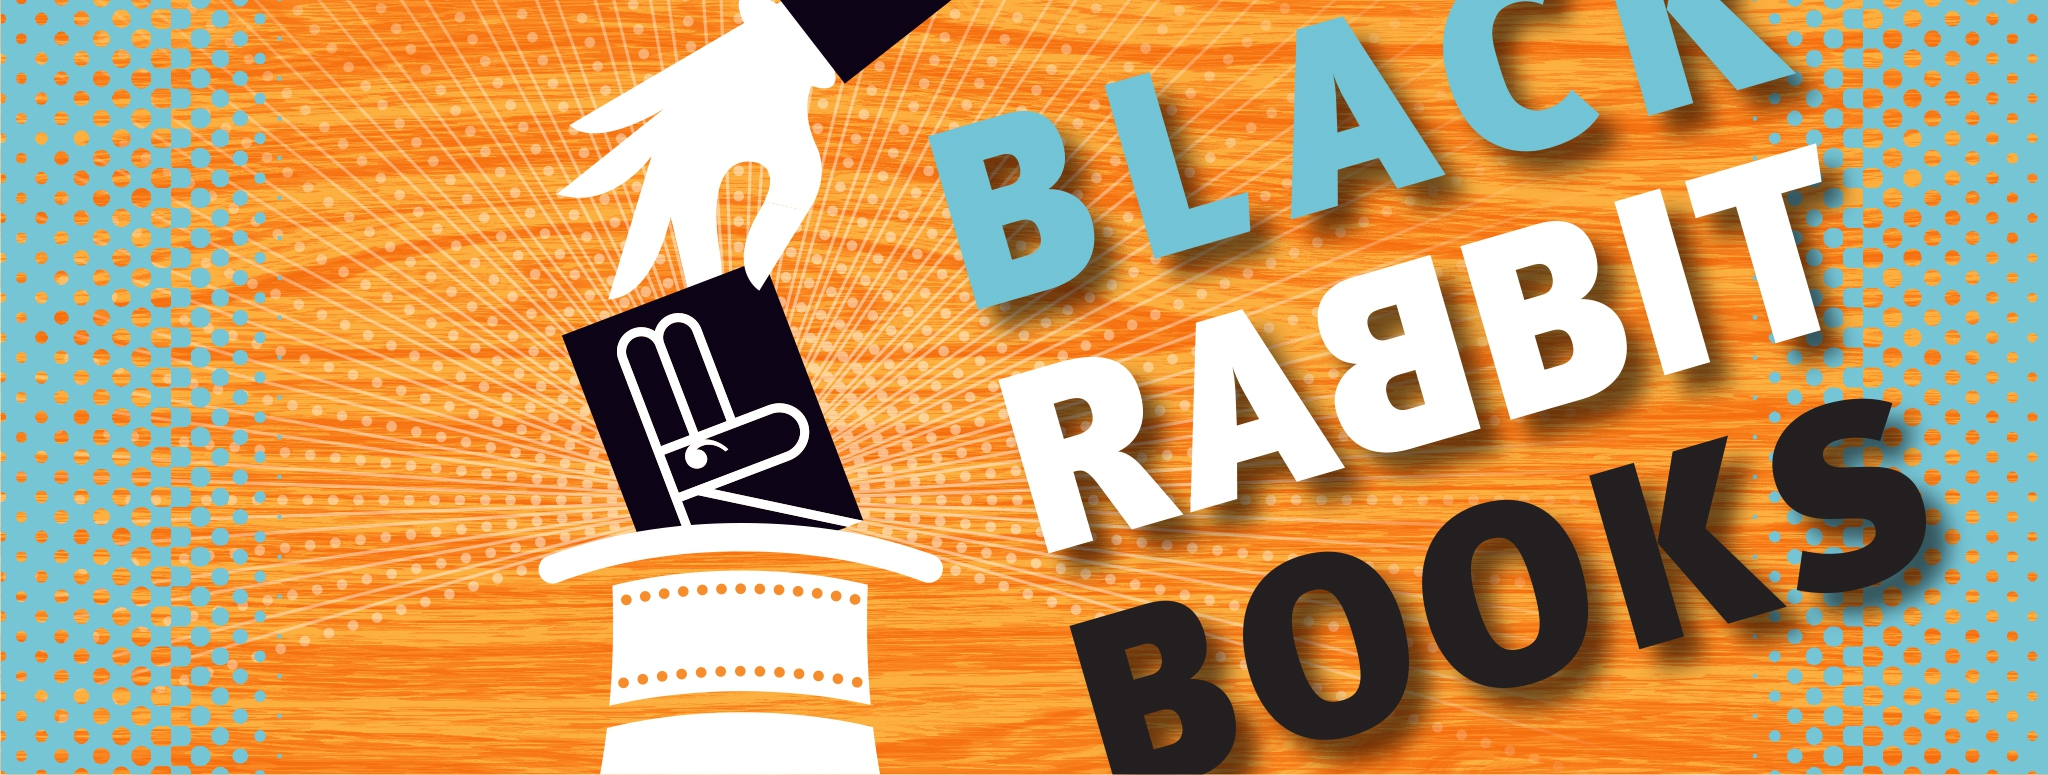 Black Rabbit Books